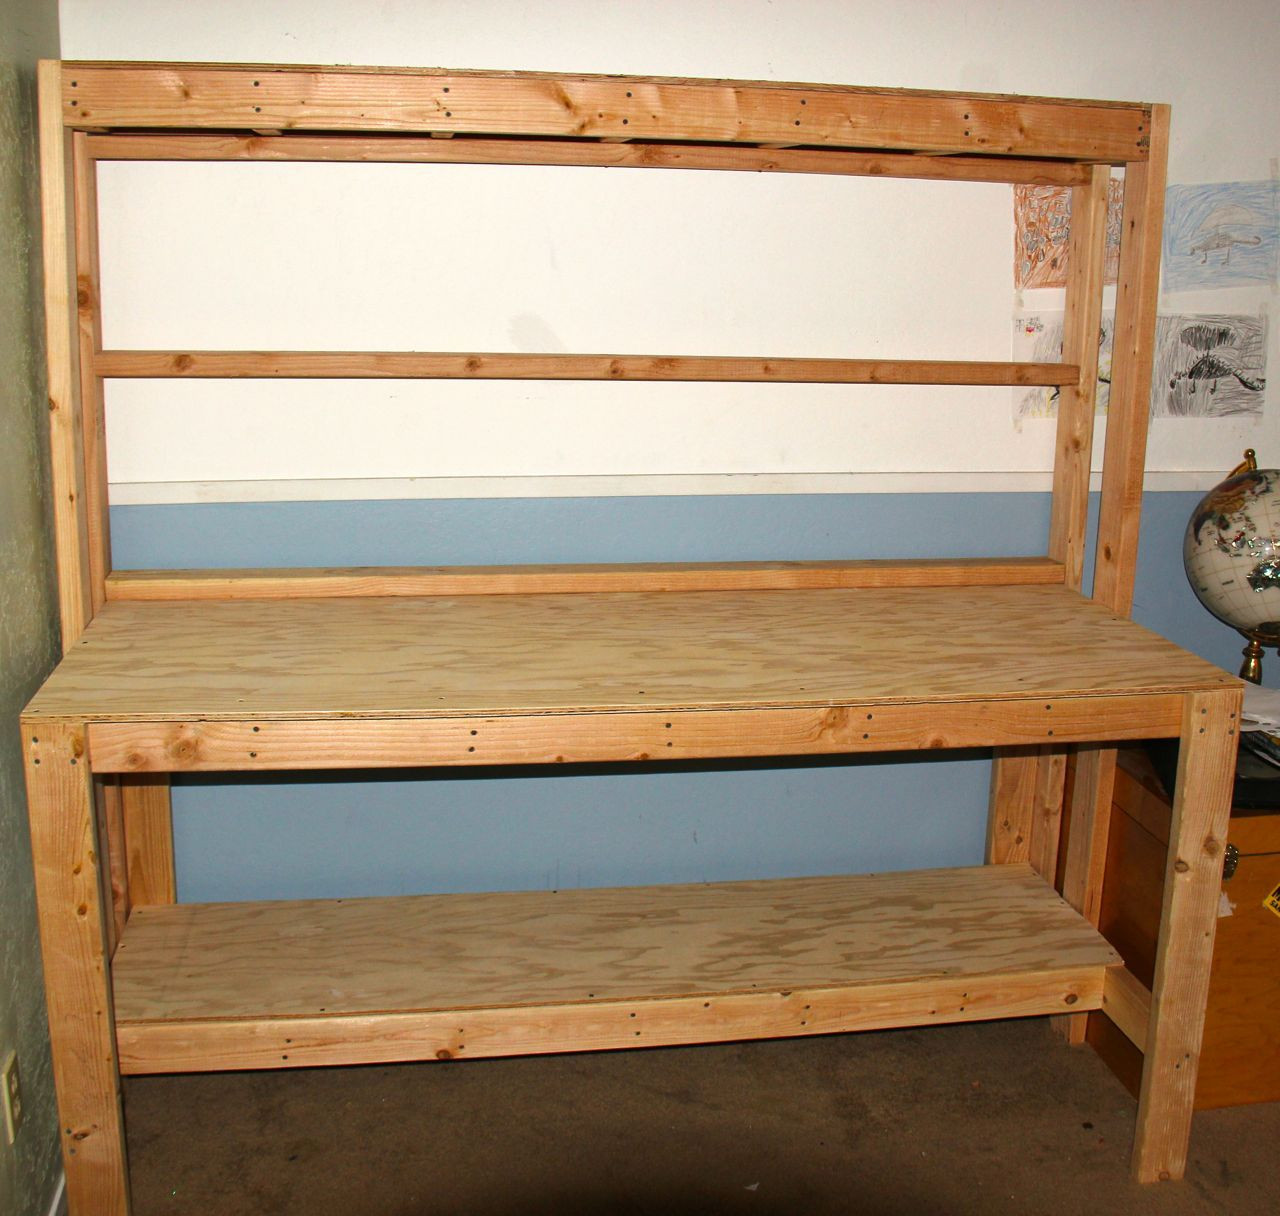 Best ideas about Workbench DIY Plans . Save or Pin Simple Wooden Workbench 11 Steps with Now.